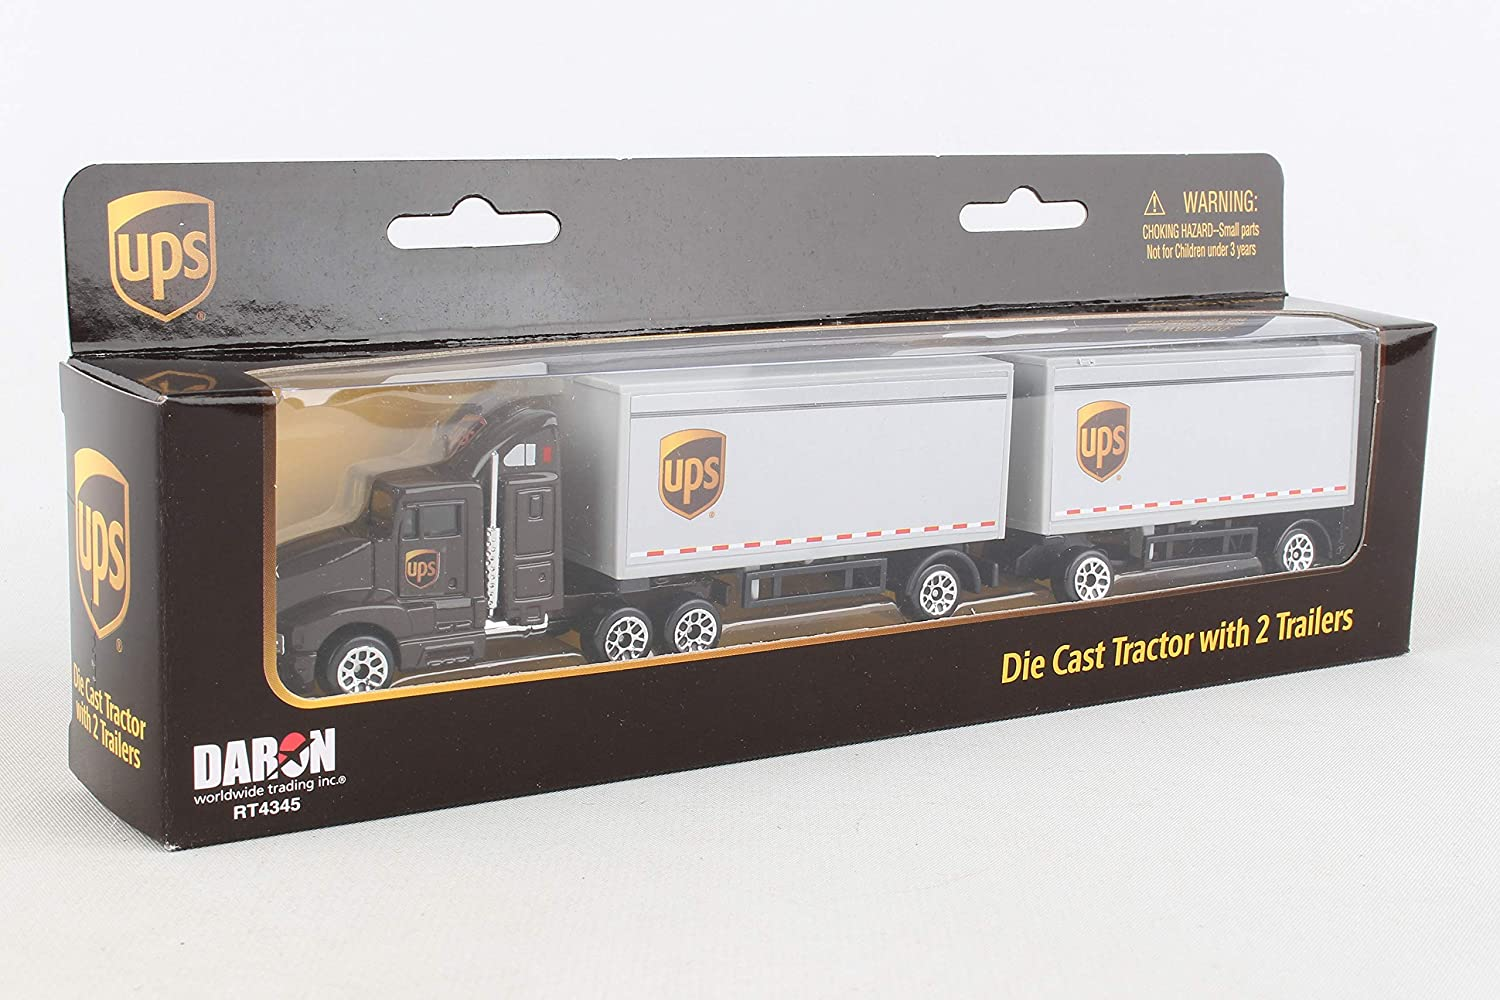 Daron UPS Die Cast Tractor with 2 Trailers